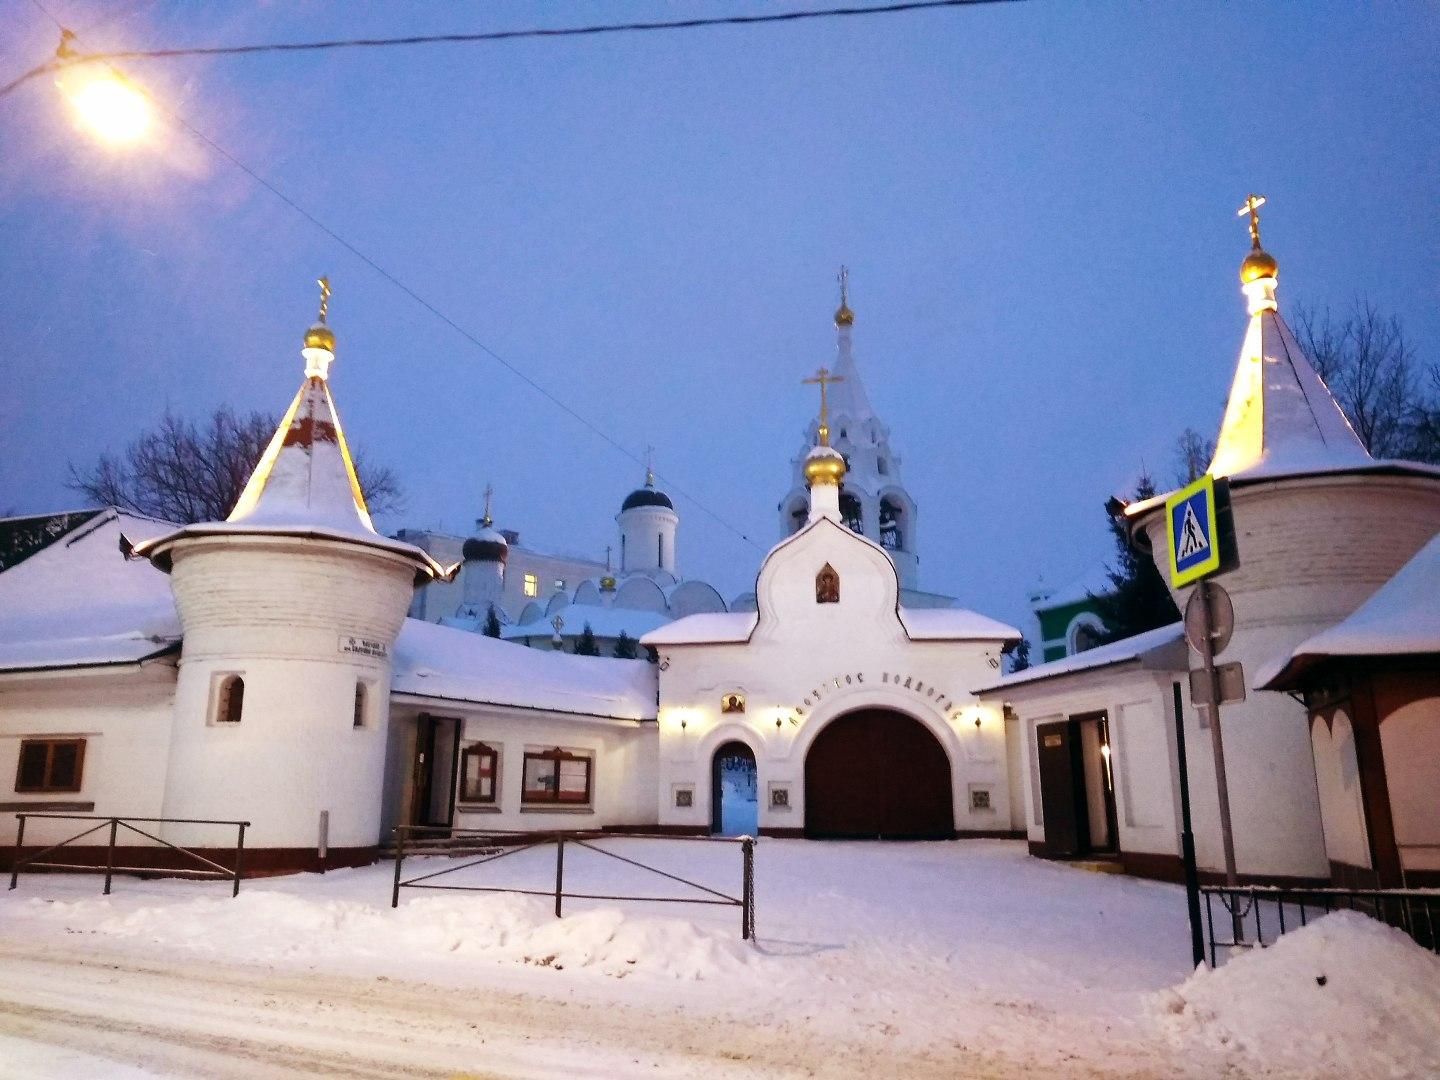 The Museum of Russian Icon